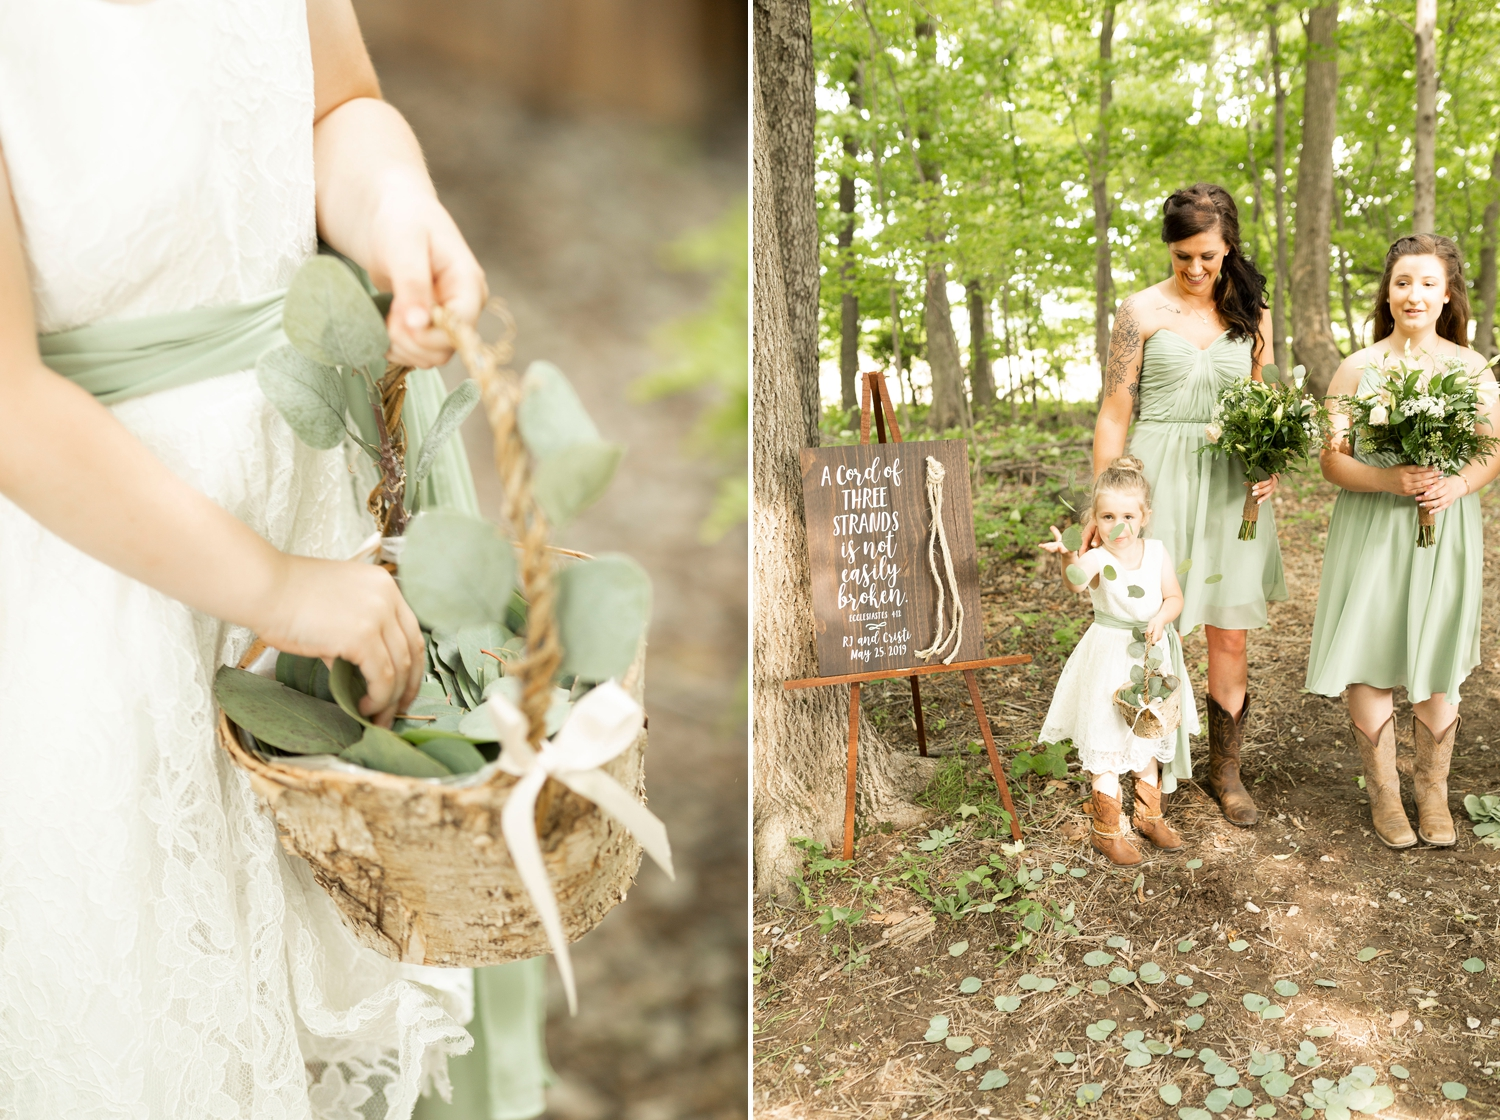 flower girl petals, wedding greenery, Barn at the backwoods, rustic wedding venues, thornville wedding, rustic wedding inspiration, Columbus wedding photographer, columbus wedding photography, country wedding, backwoods wedding, summer wedding, wedding ceremony